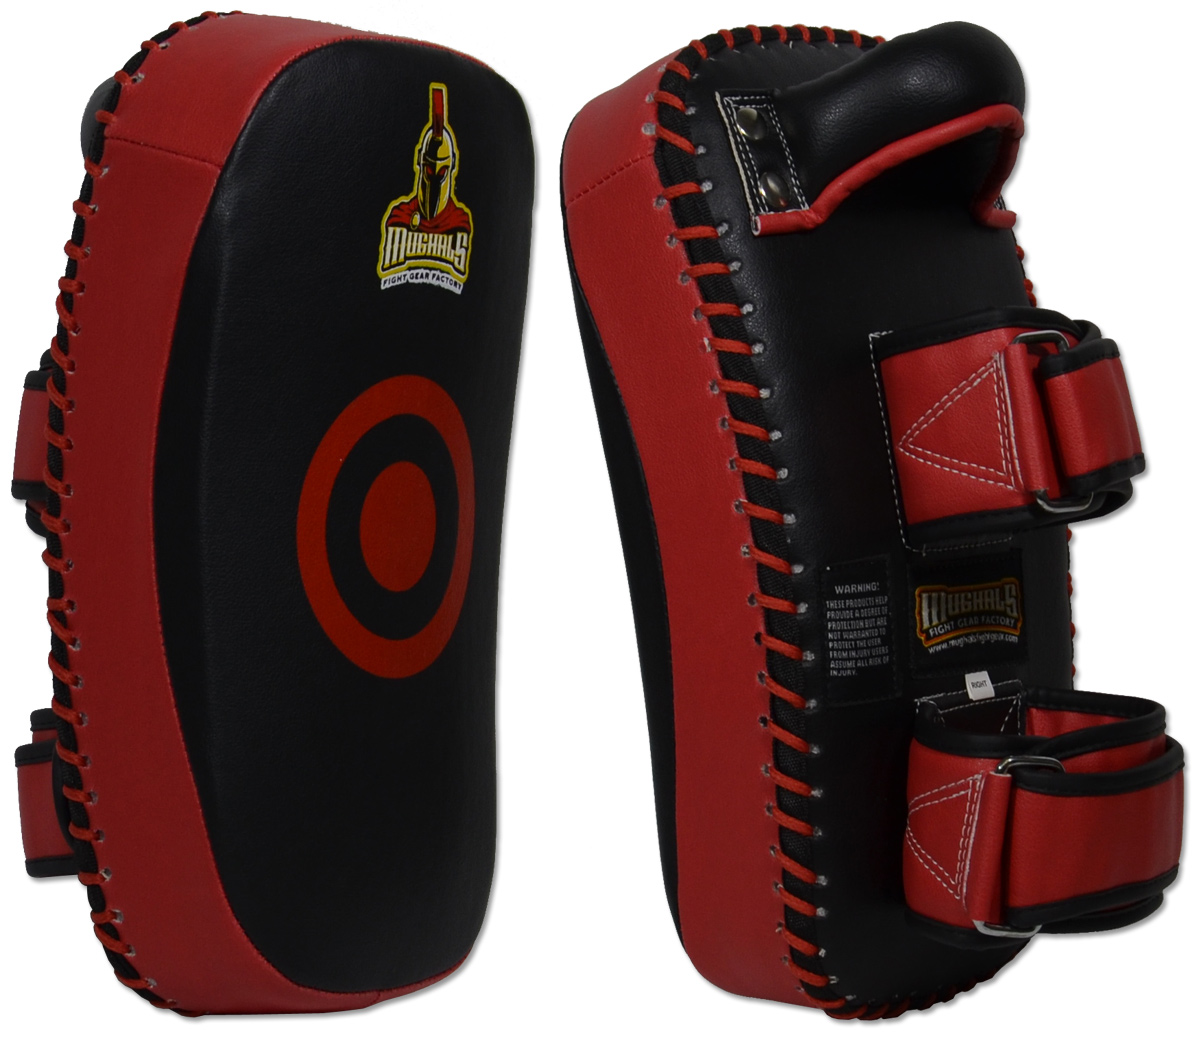 MUGHALS Pro Curved Thai Pad